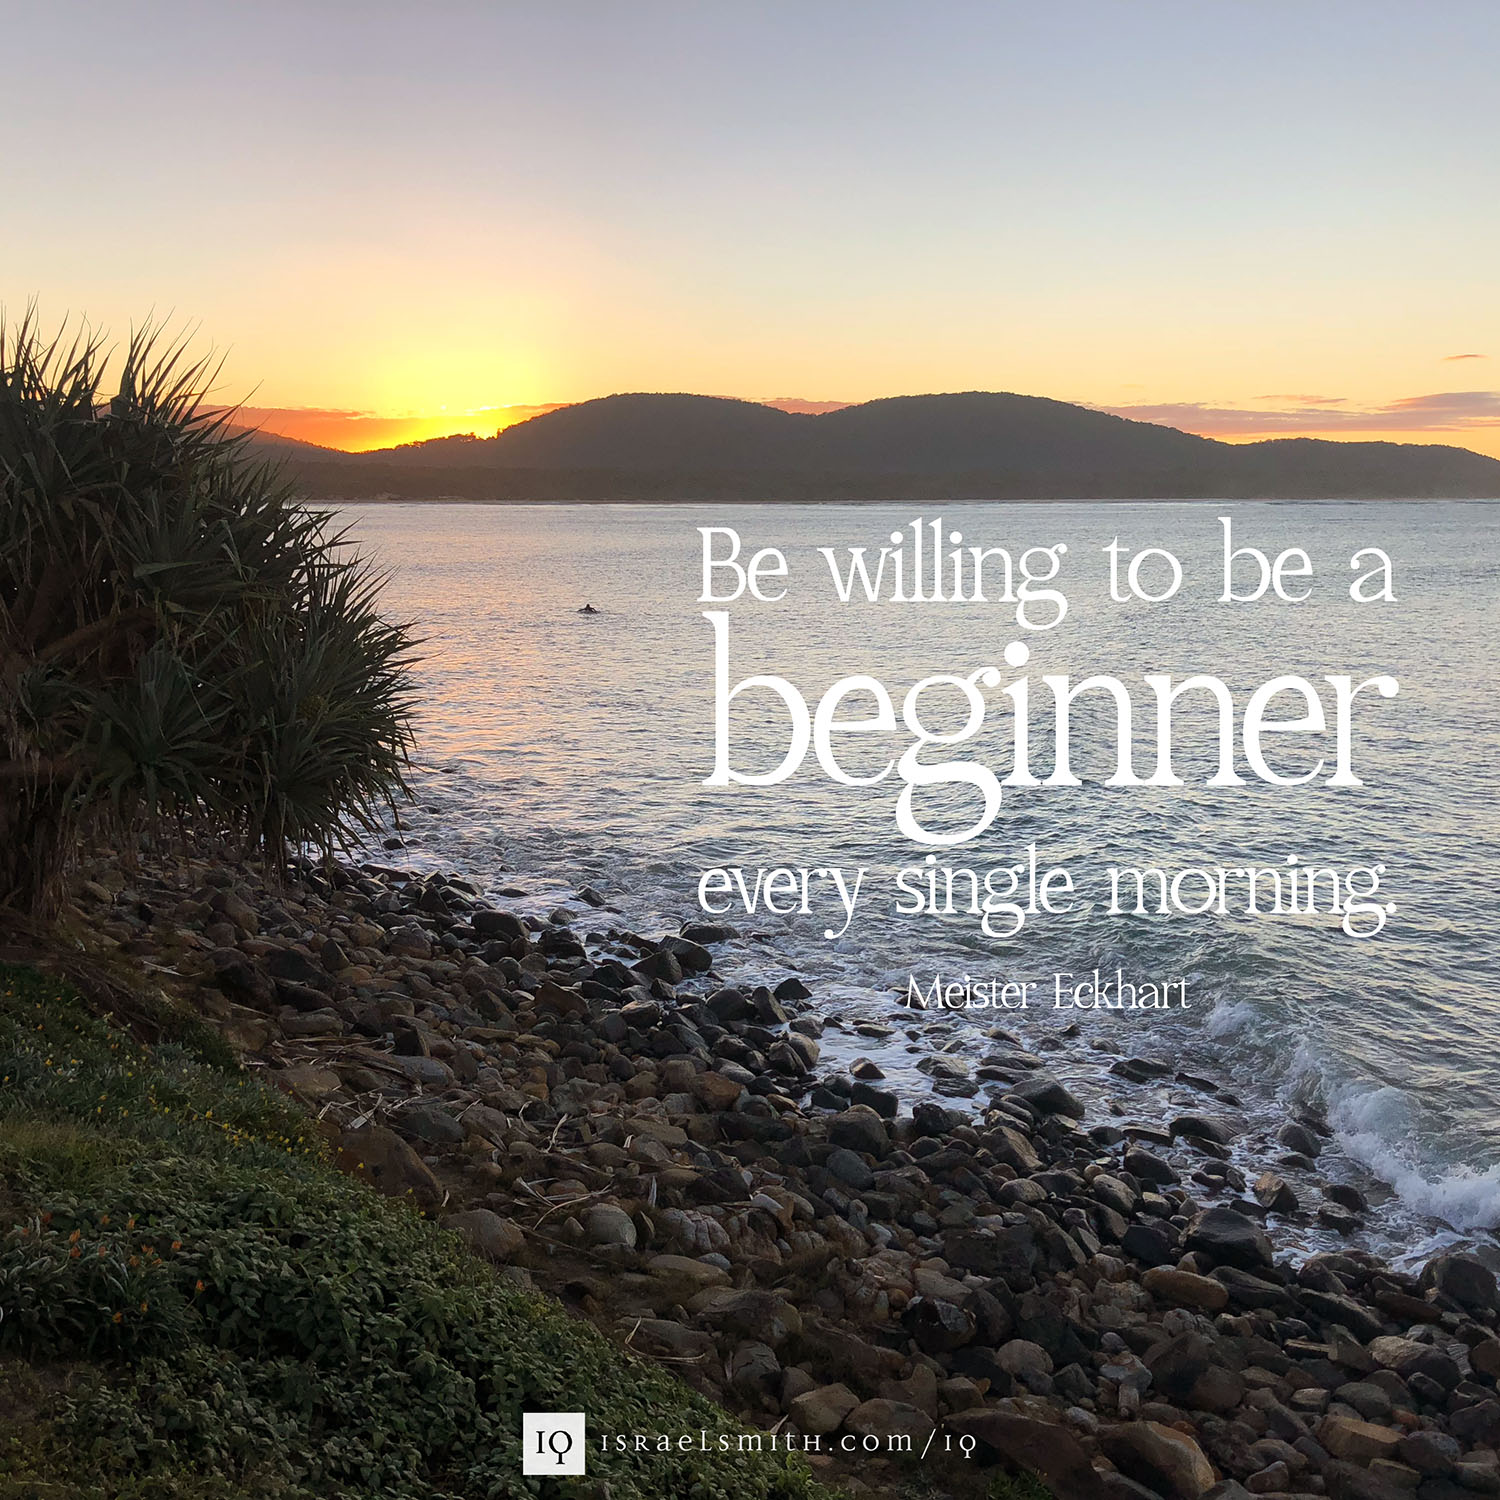 Be willing to be a beginner